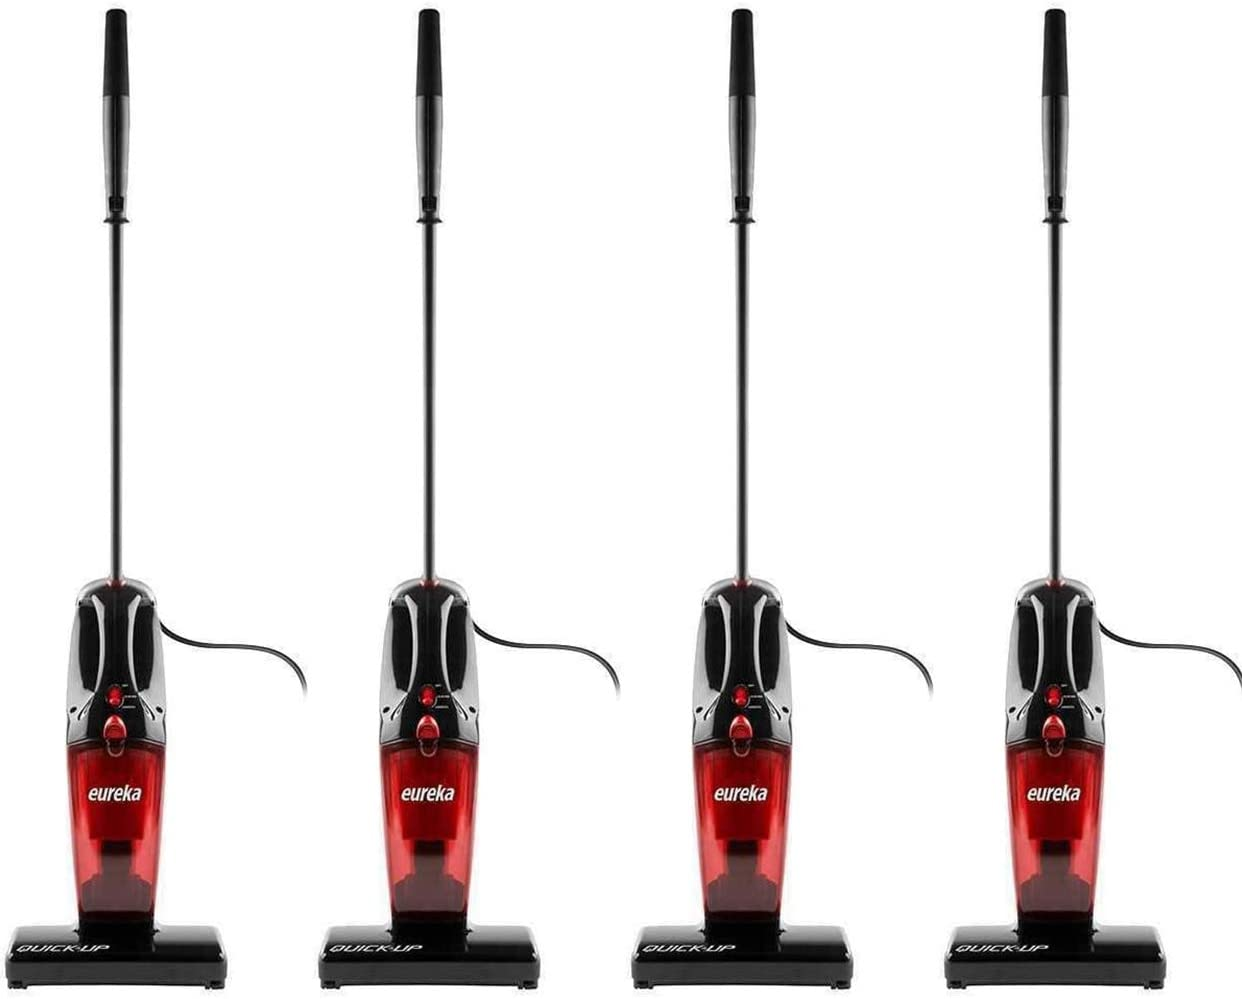 Eureka 169K 2-in-1 Quick-Up Bagless Stick Vacuum Cleaner for Bare Floors and Rugs, 169J+Filter, Light Red (Four Pack)